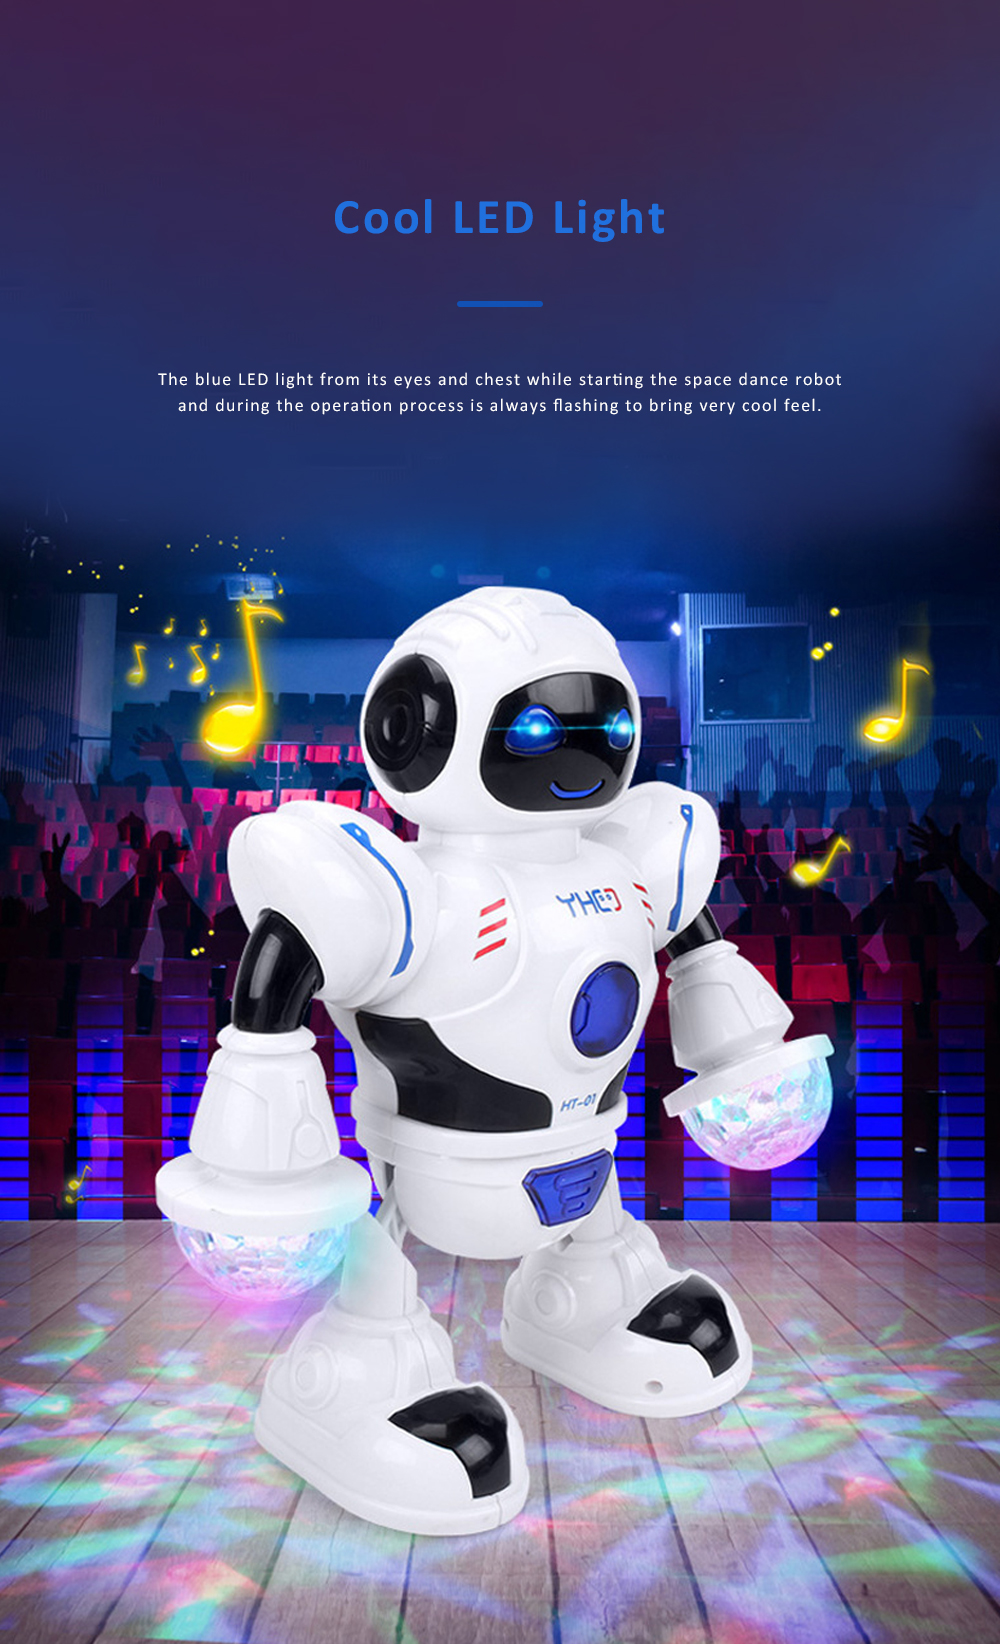 Space Dance Robot for Kids' Gift With LED Light Dancing Robot Kids' Electronic Toy Battery-operated Dance Robot 4